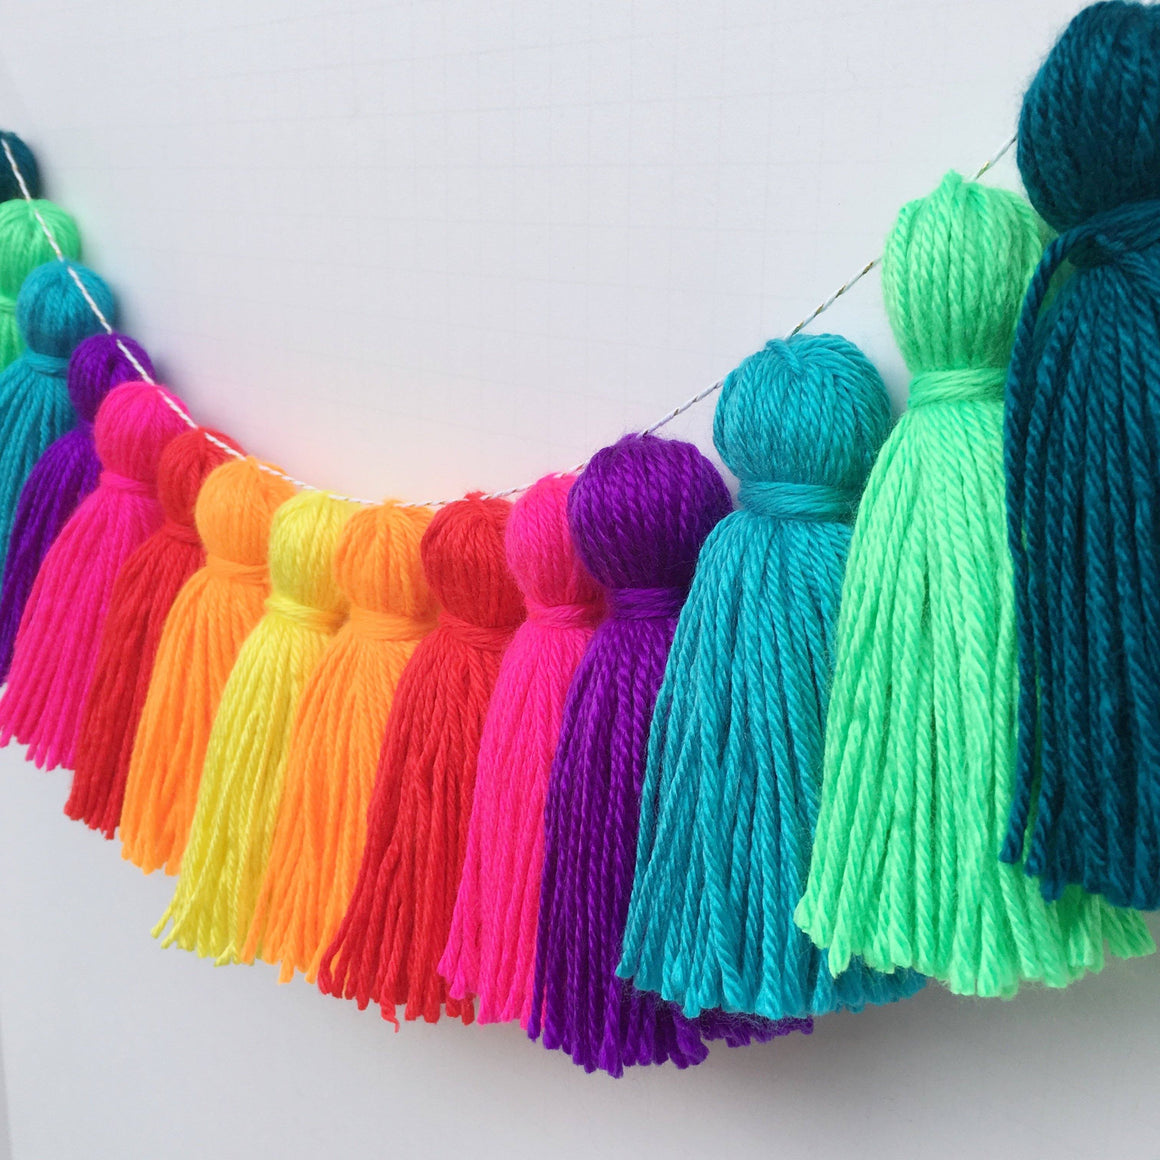 TASSEL GARLAND - YARN SPECTRUM